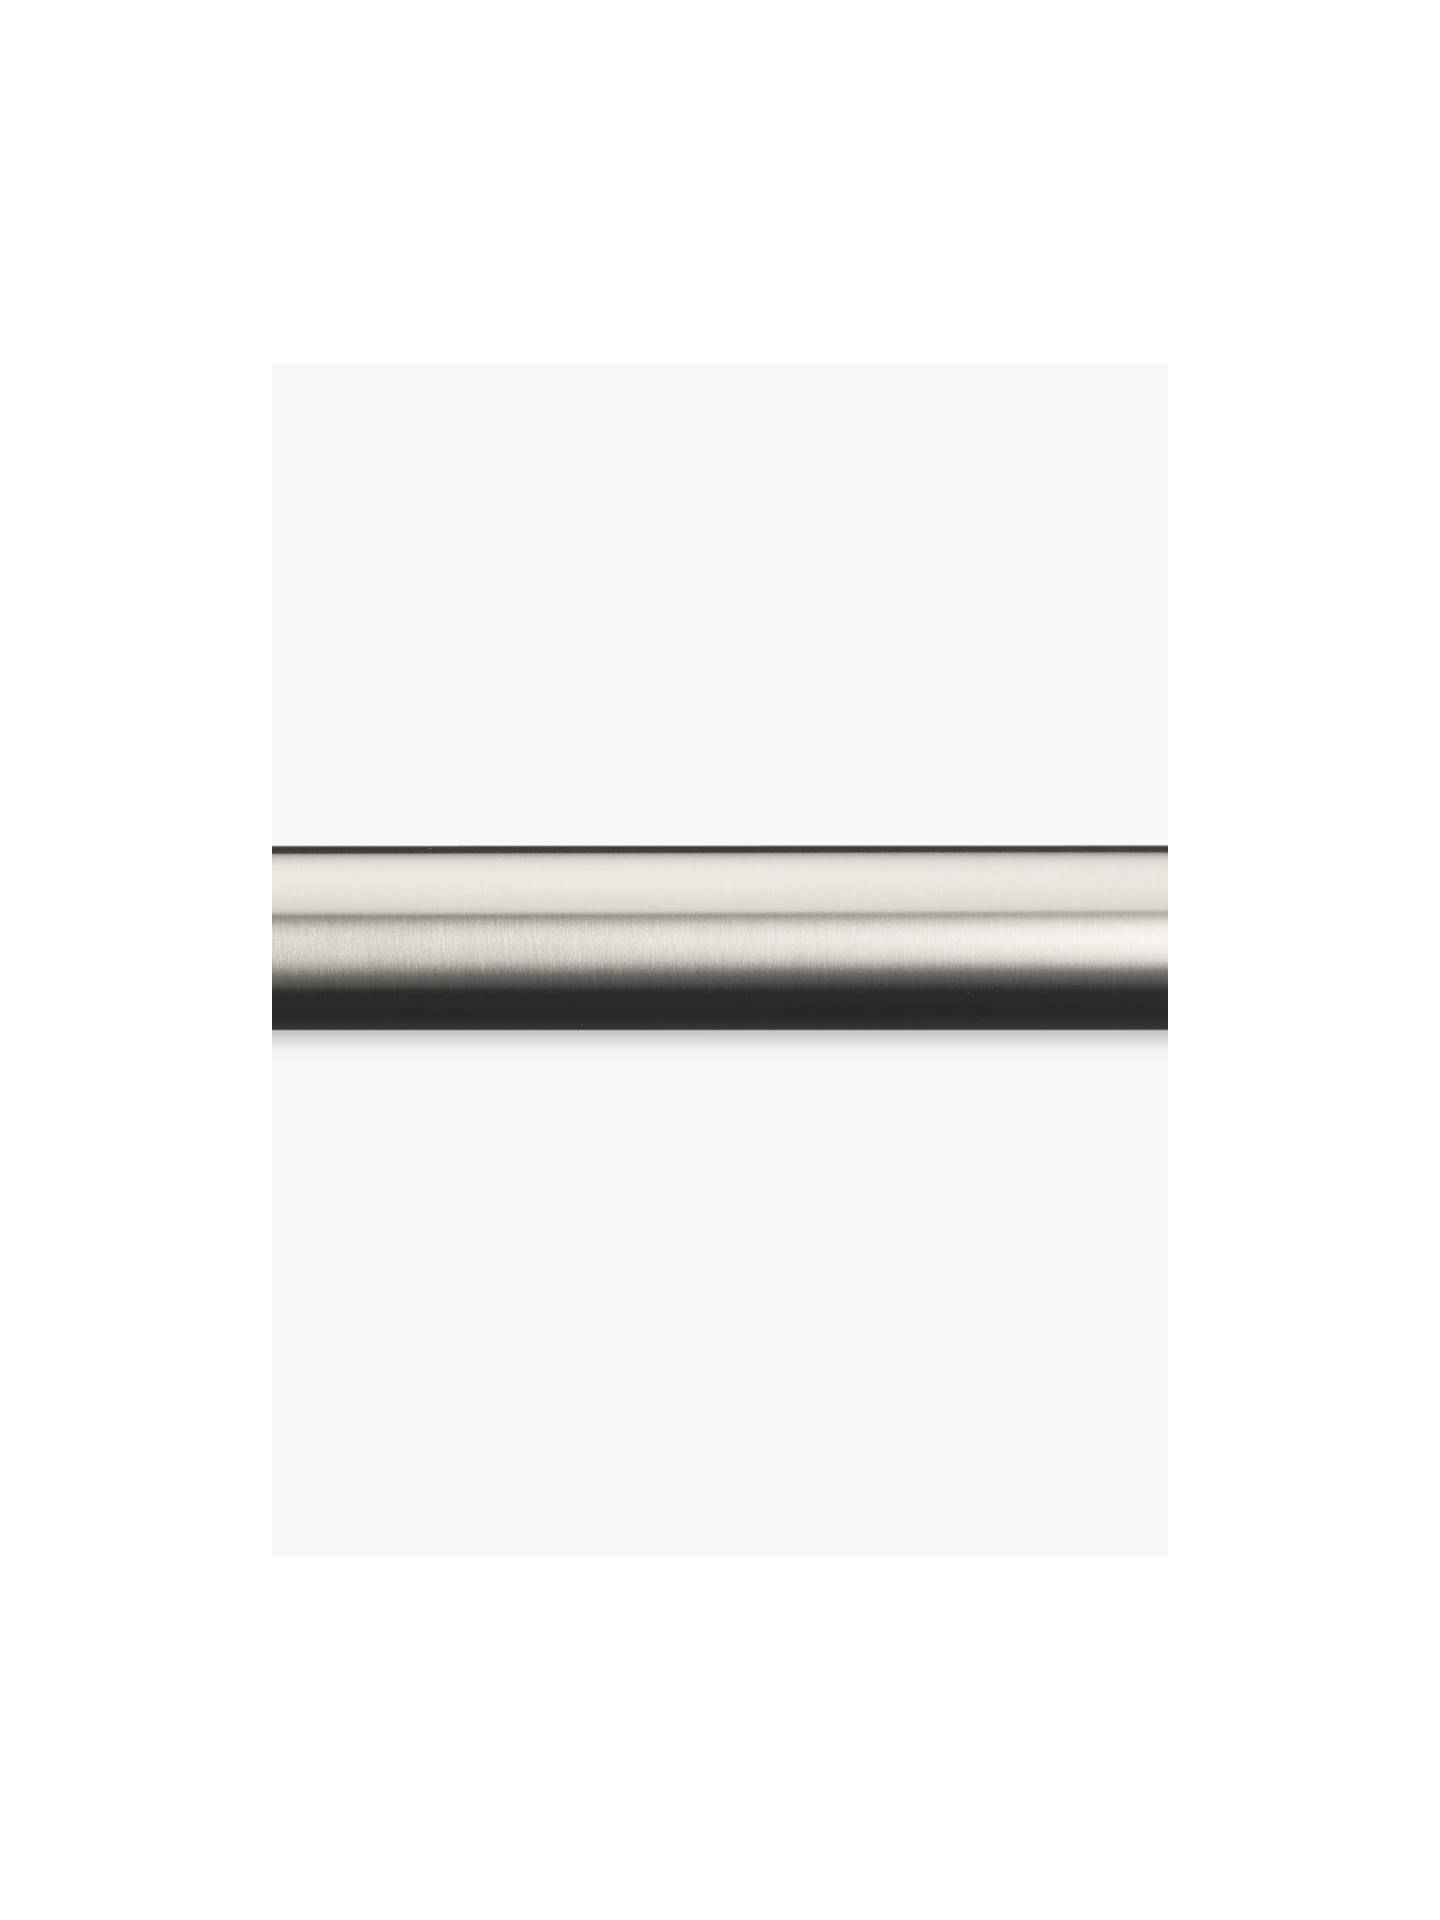 BuyJohn Lewis Stainless Steel Curtain Pole Kit, L300cm x Dia.25mm Online at johnlewis.com